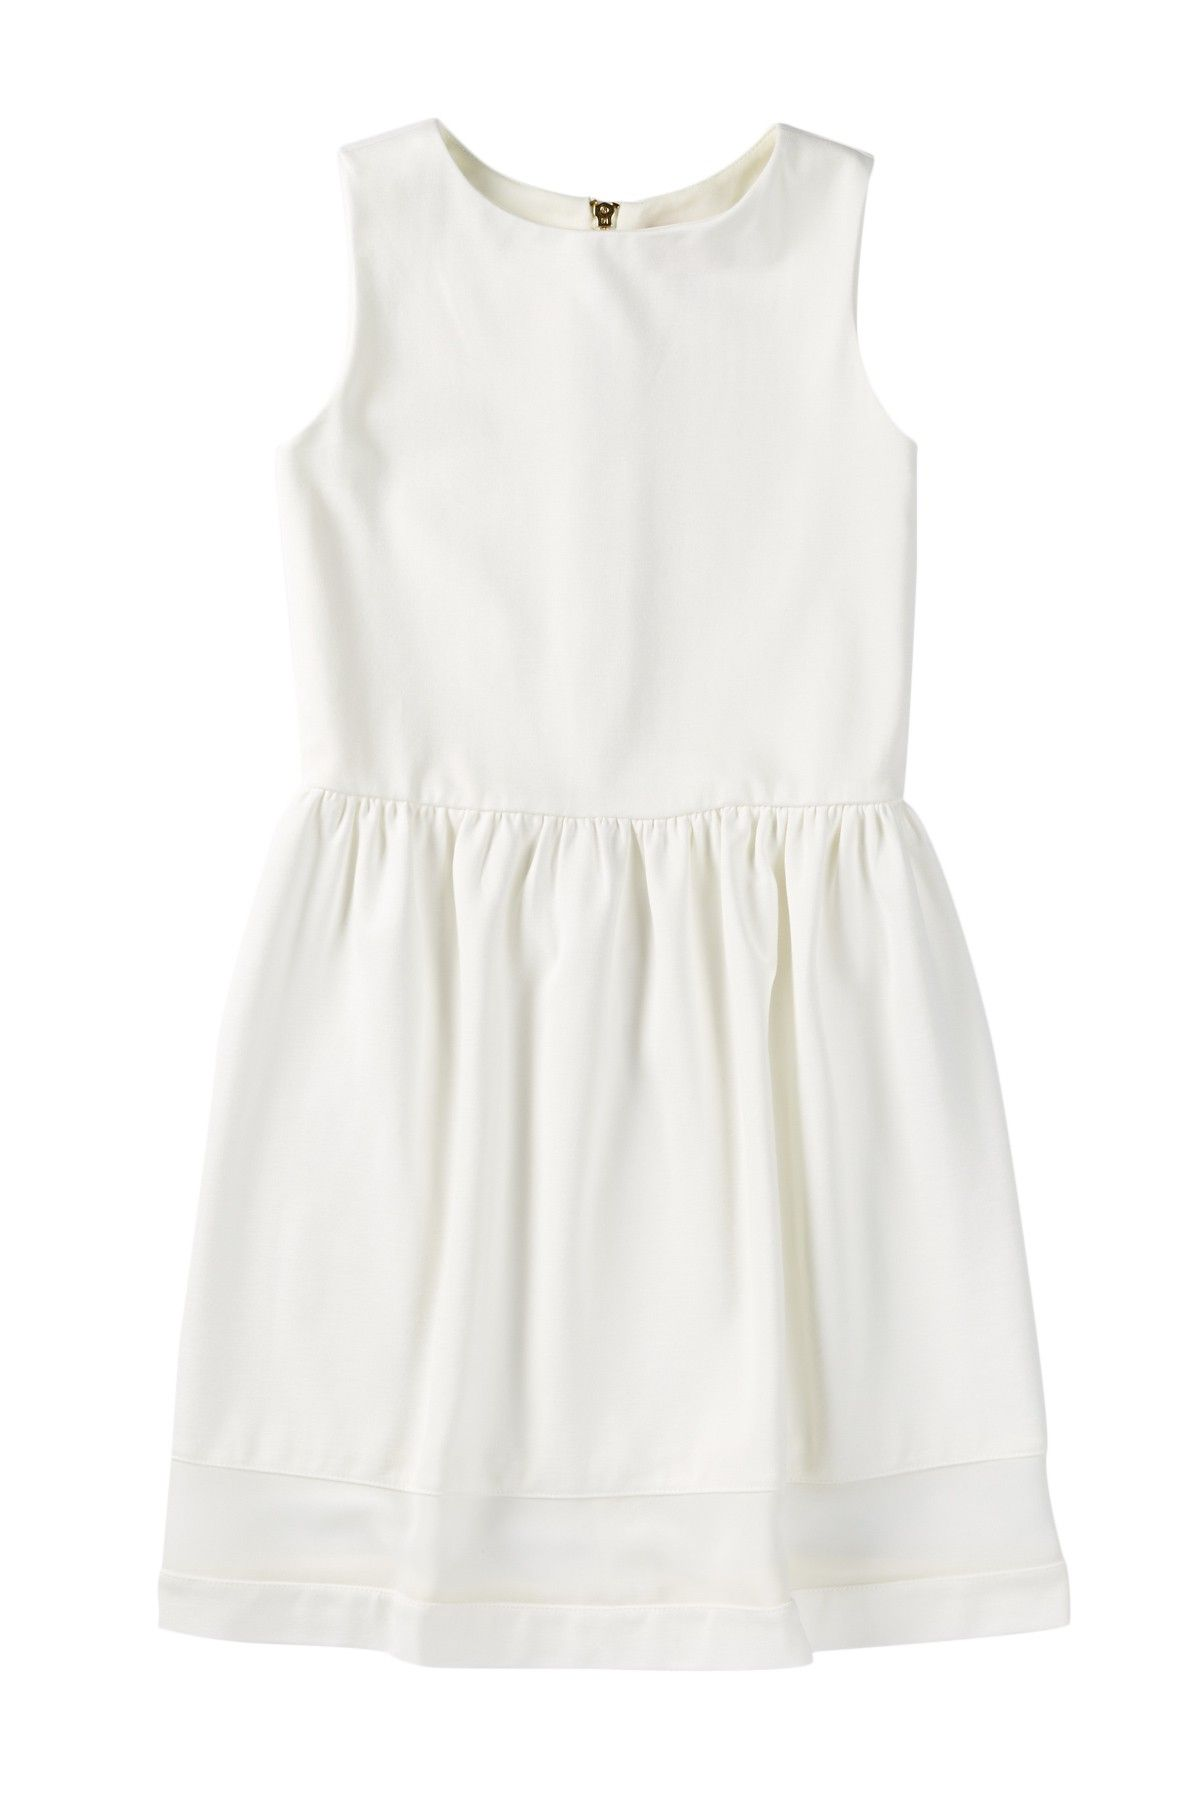 Fit N Flare Organza Striped Bottom Dress (Big Girls) by Love...Ady Girls on @nordstrom_rack